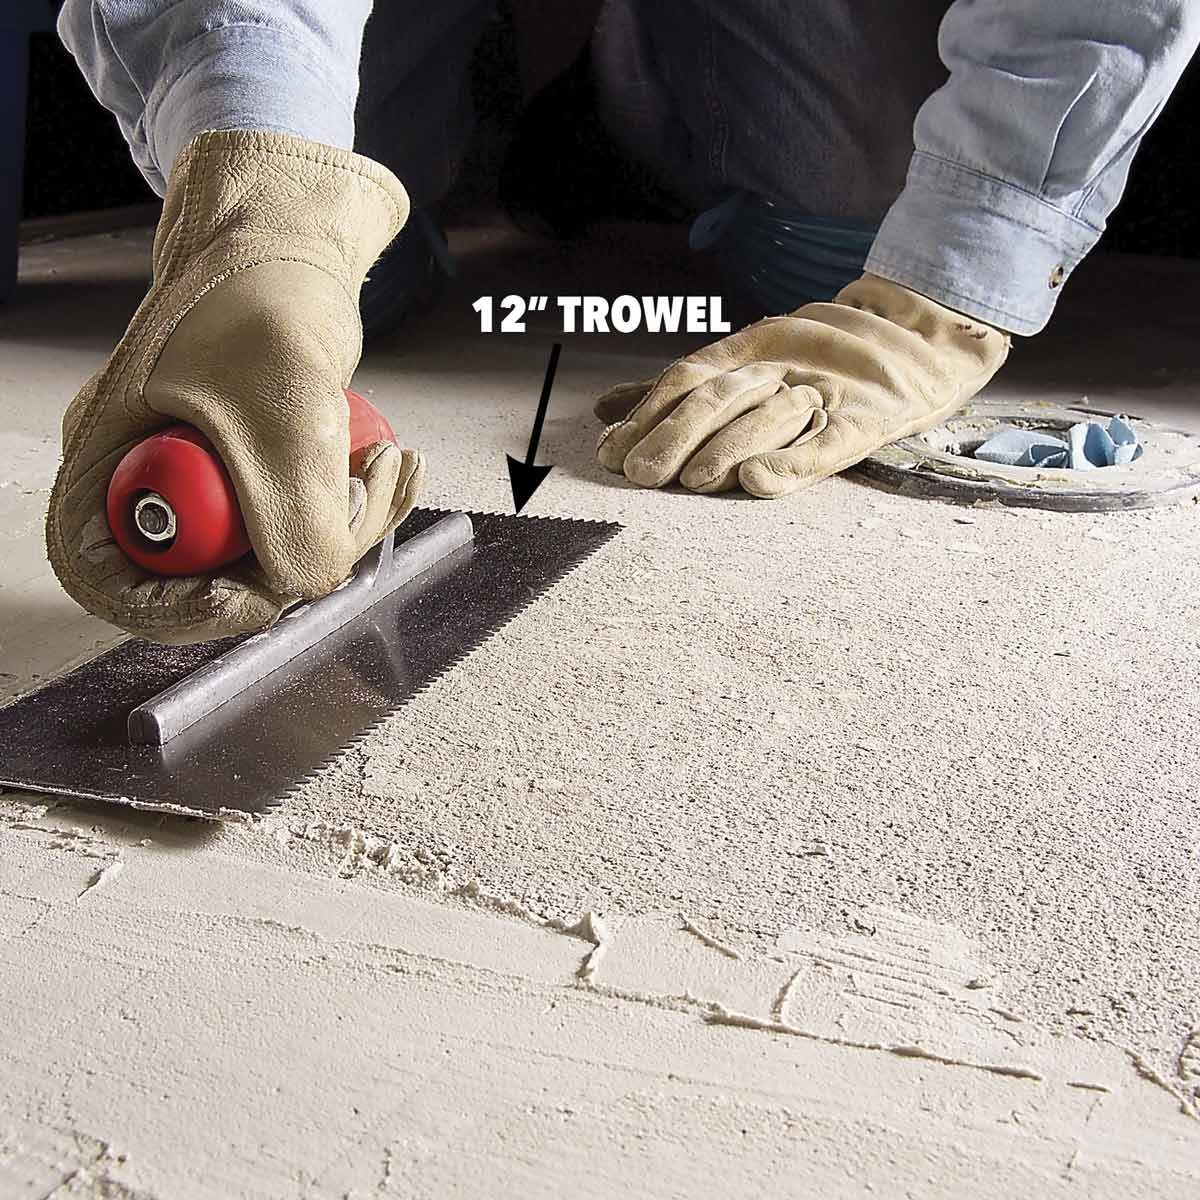 How To Remove Old Ceramic Tile Adhesive From Floor